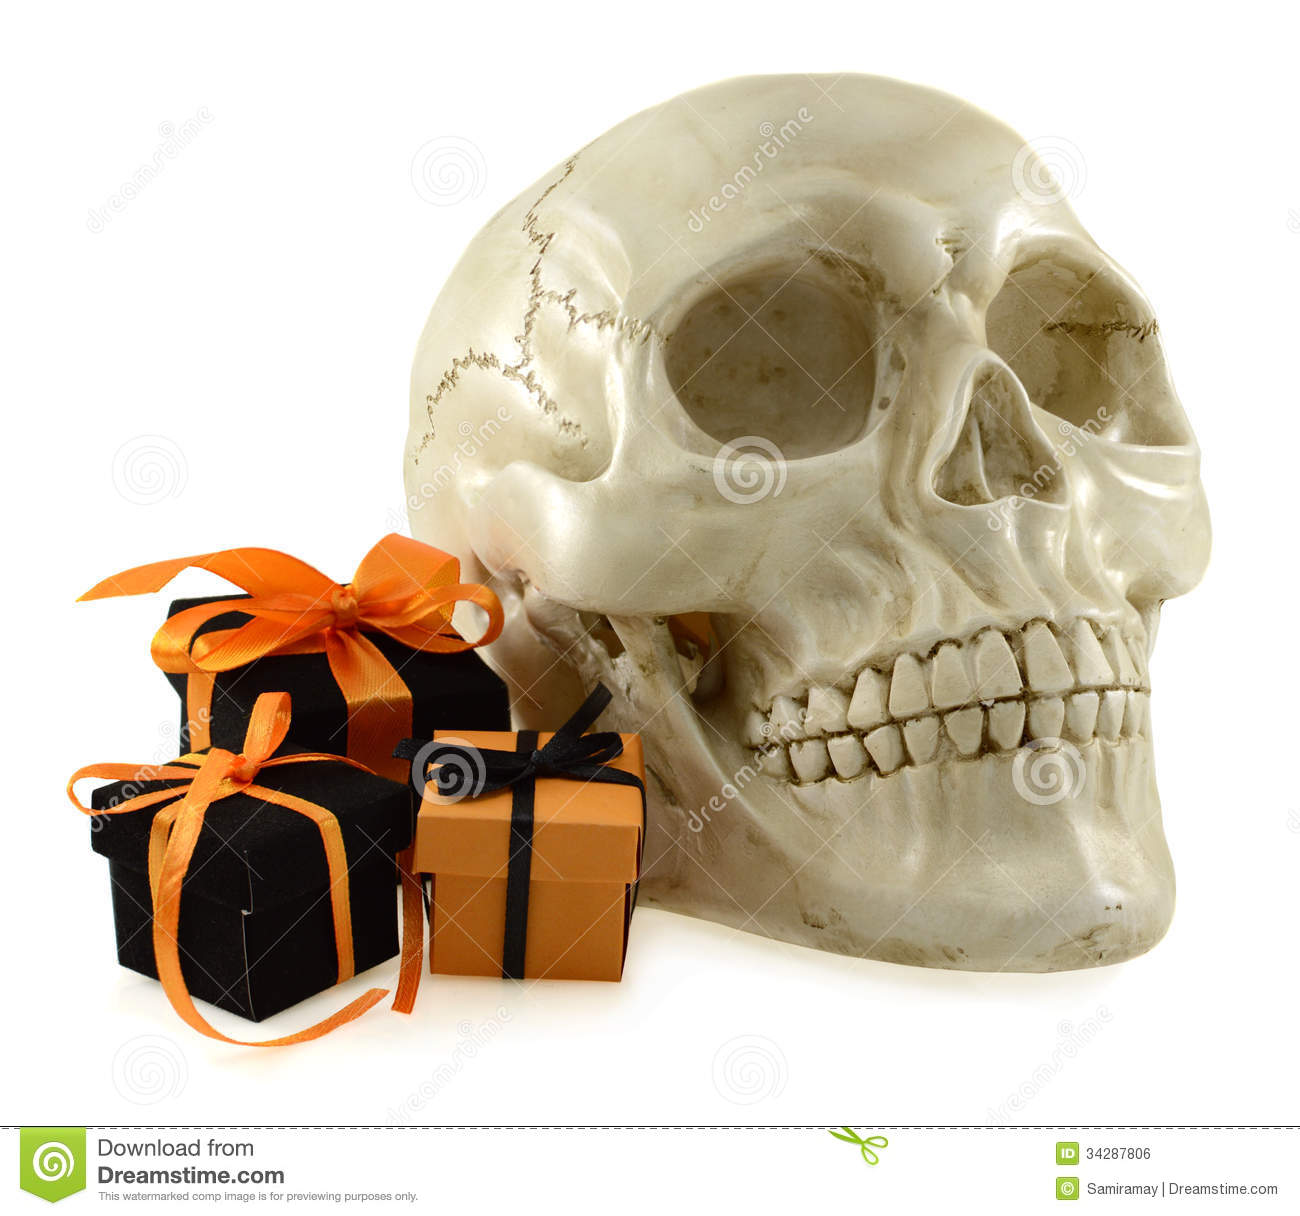 Download Skull With Cute Halloween Gifts Stock Photo Image Of Human Evil 34287806